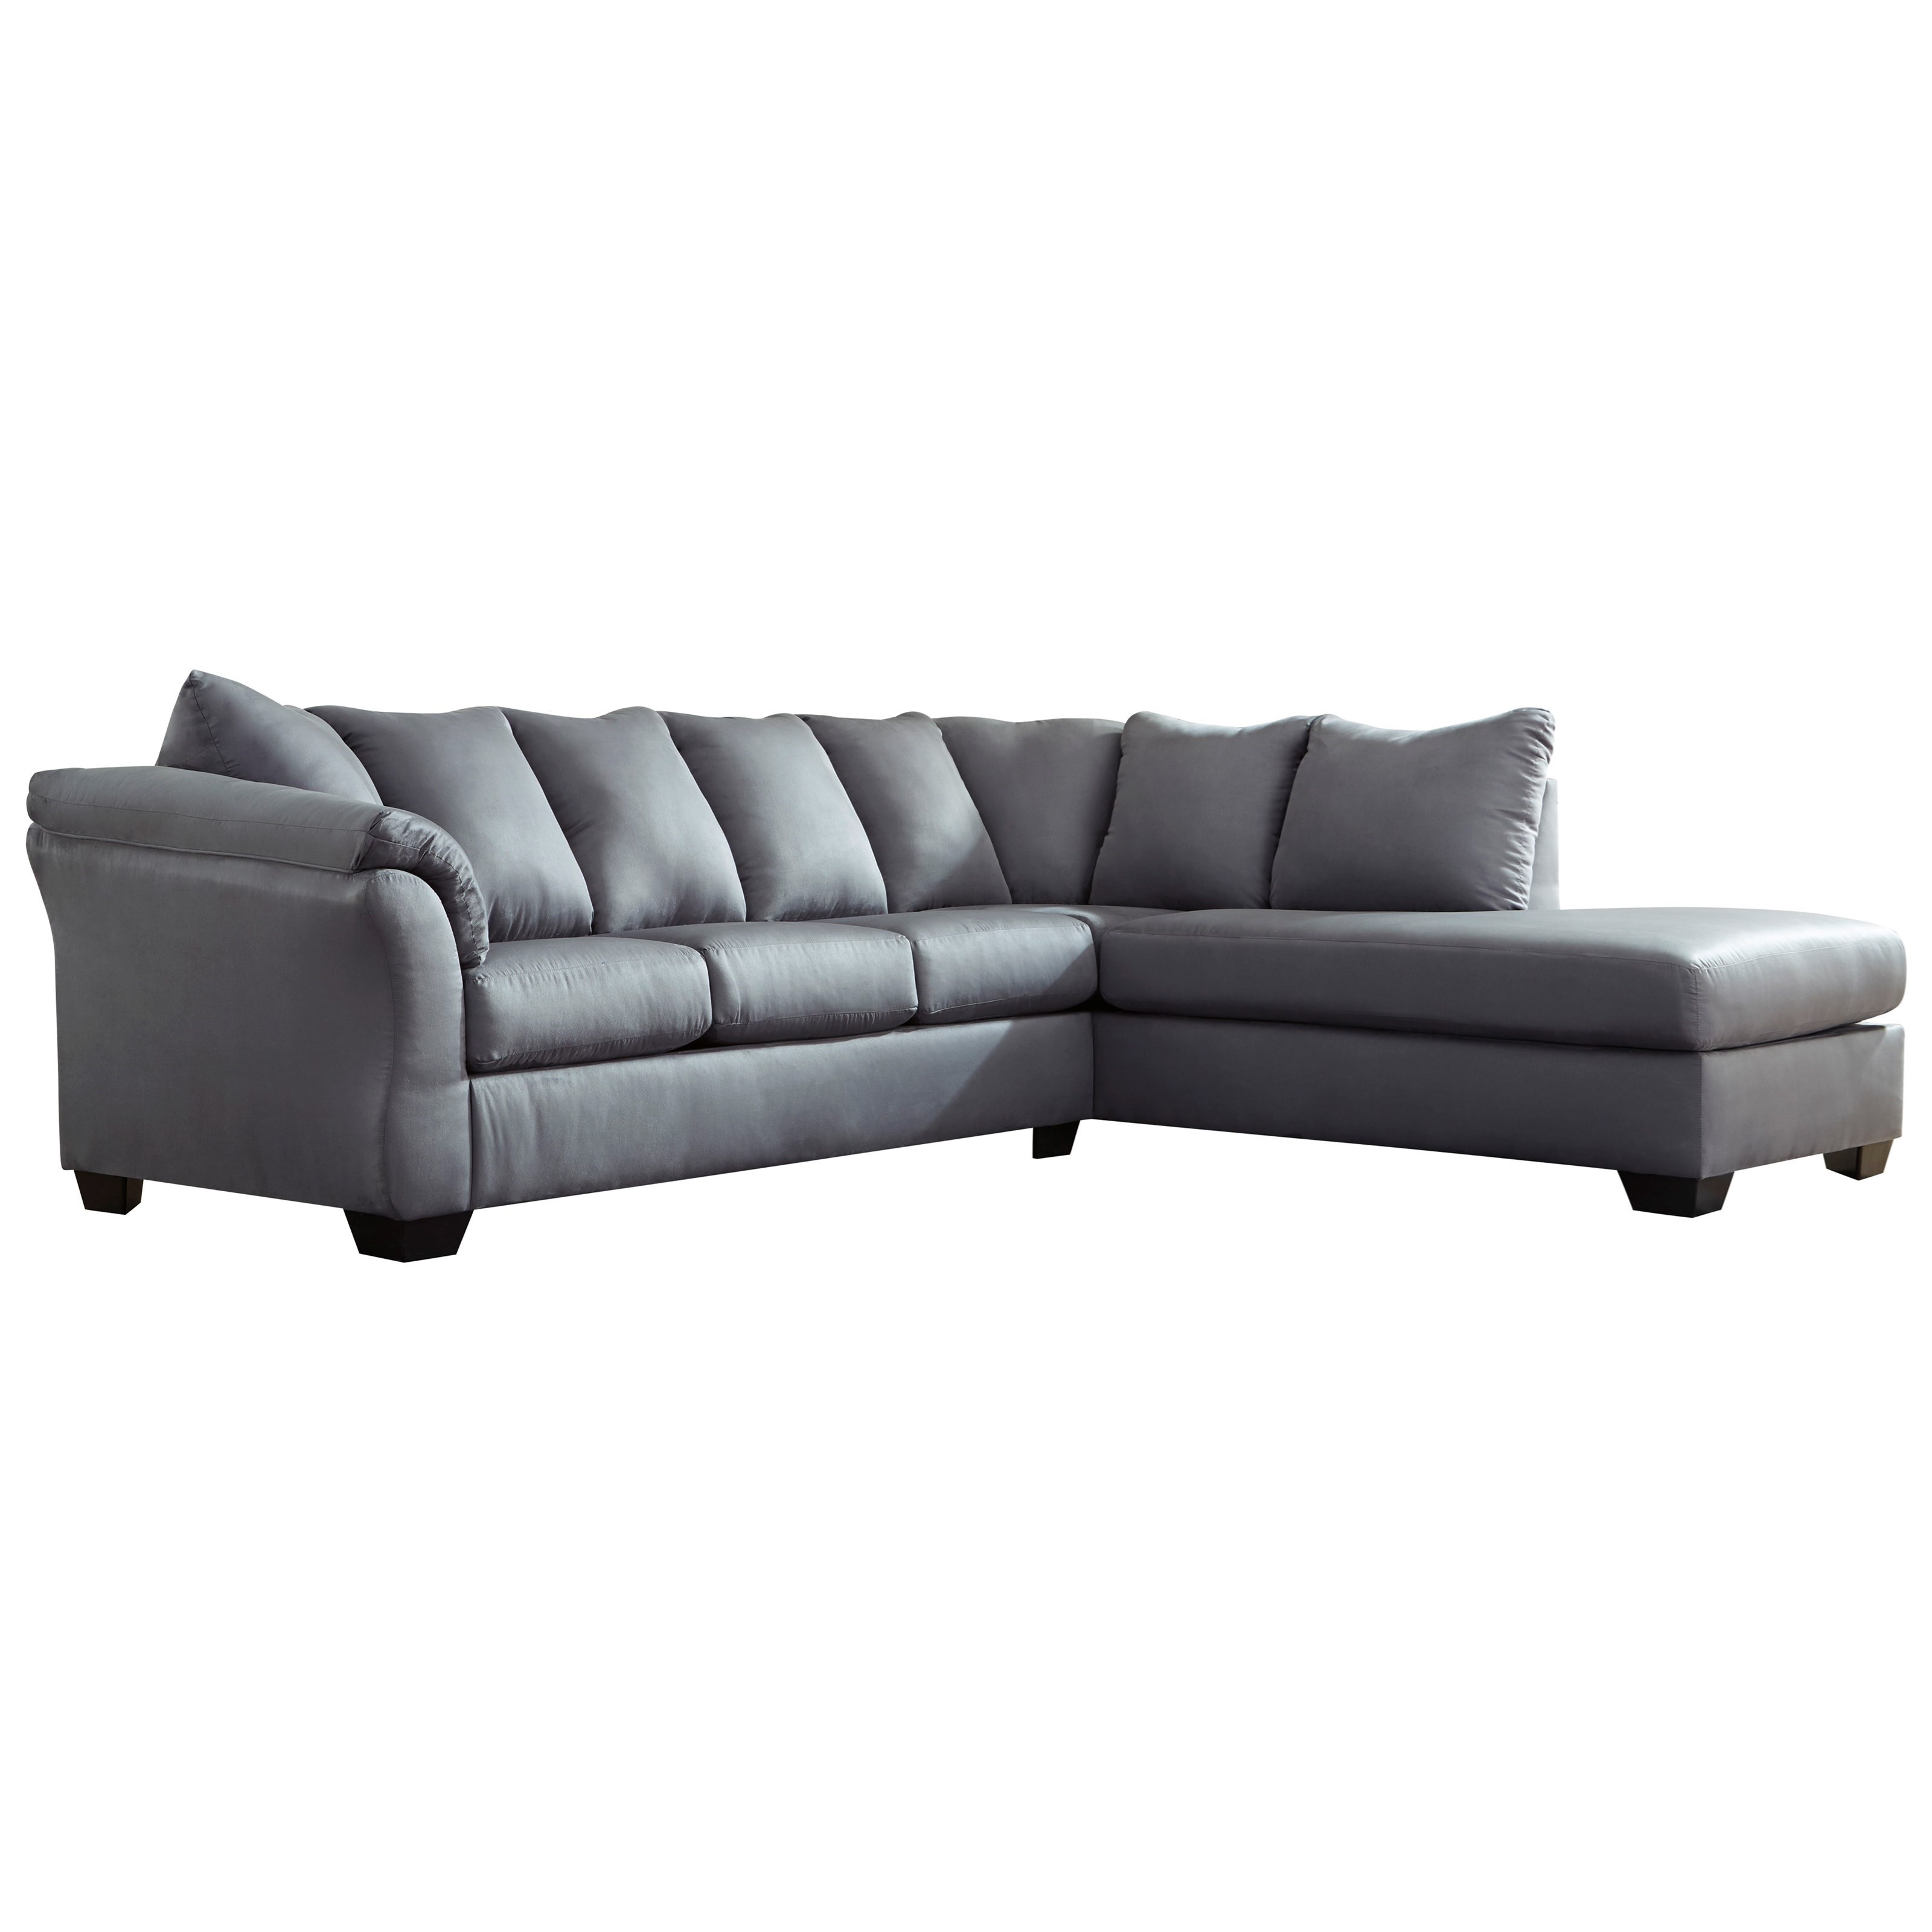 Darcy - Steel 2-Piece Sectional Sofa by Ashley (Signature Design) at Johnny Janosik